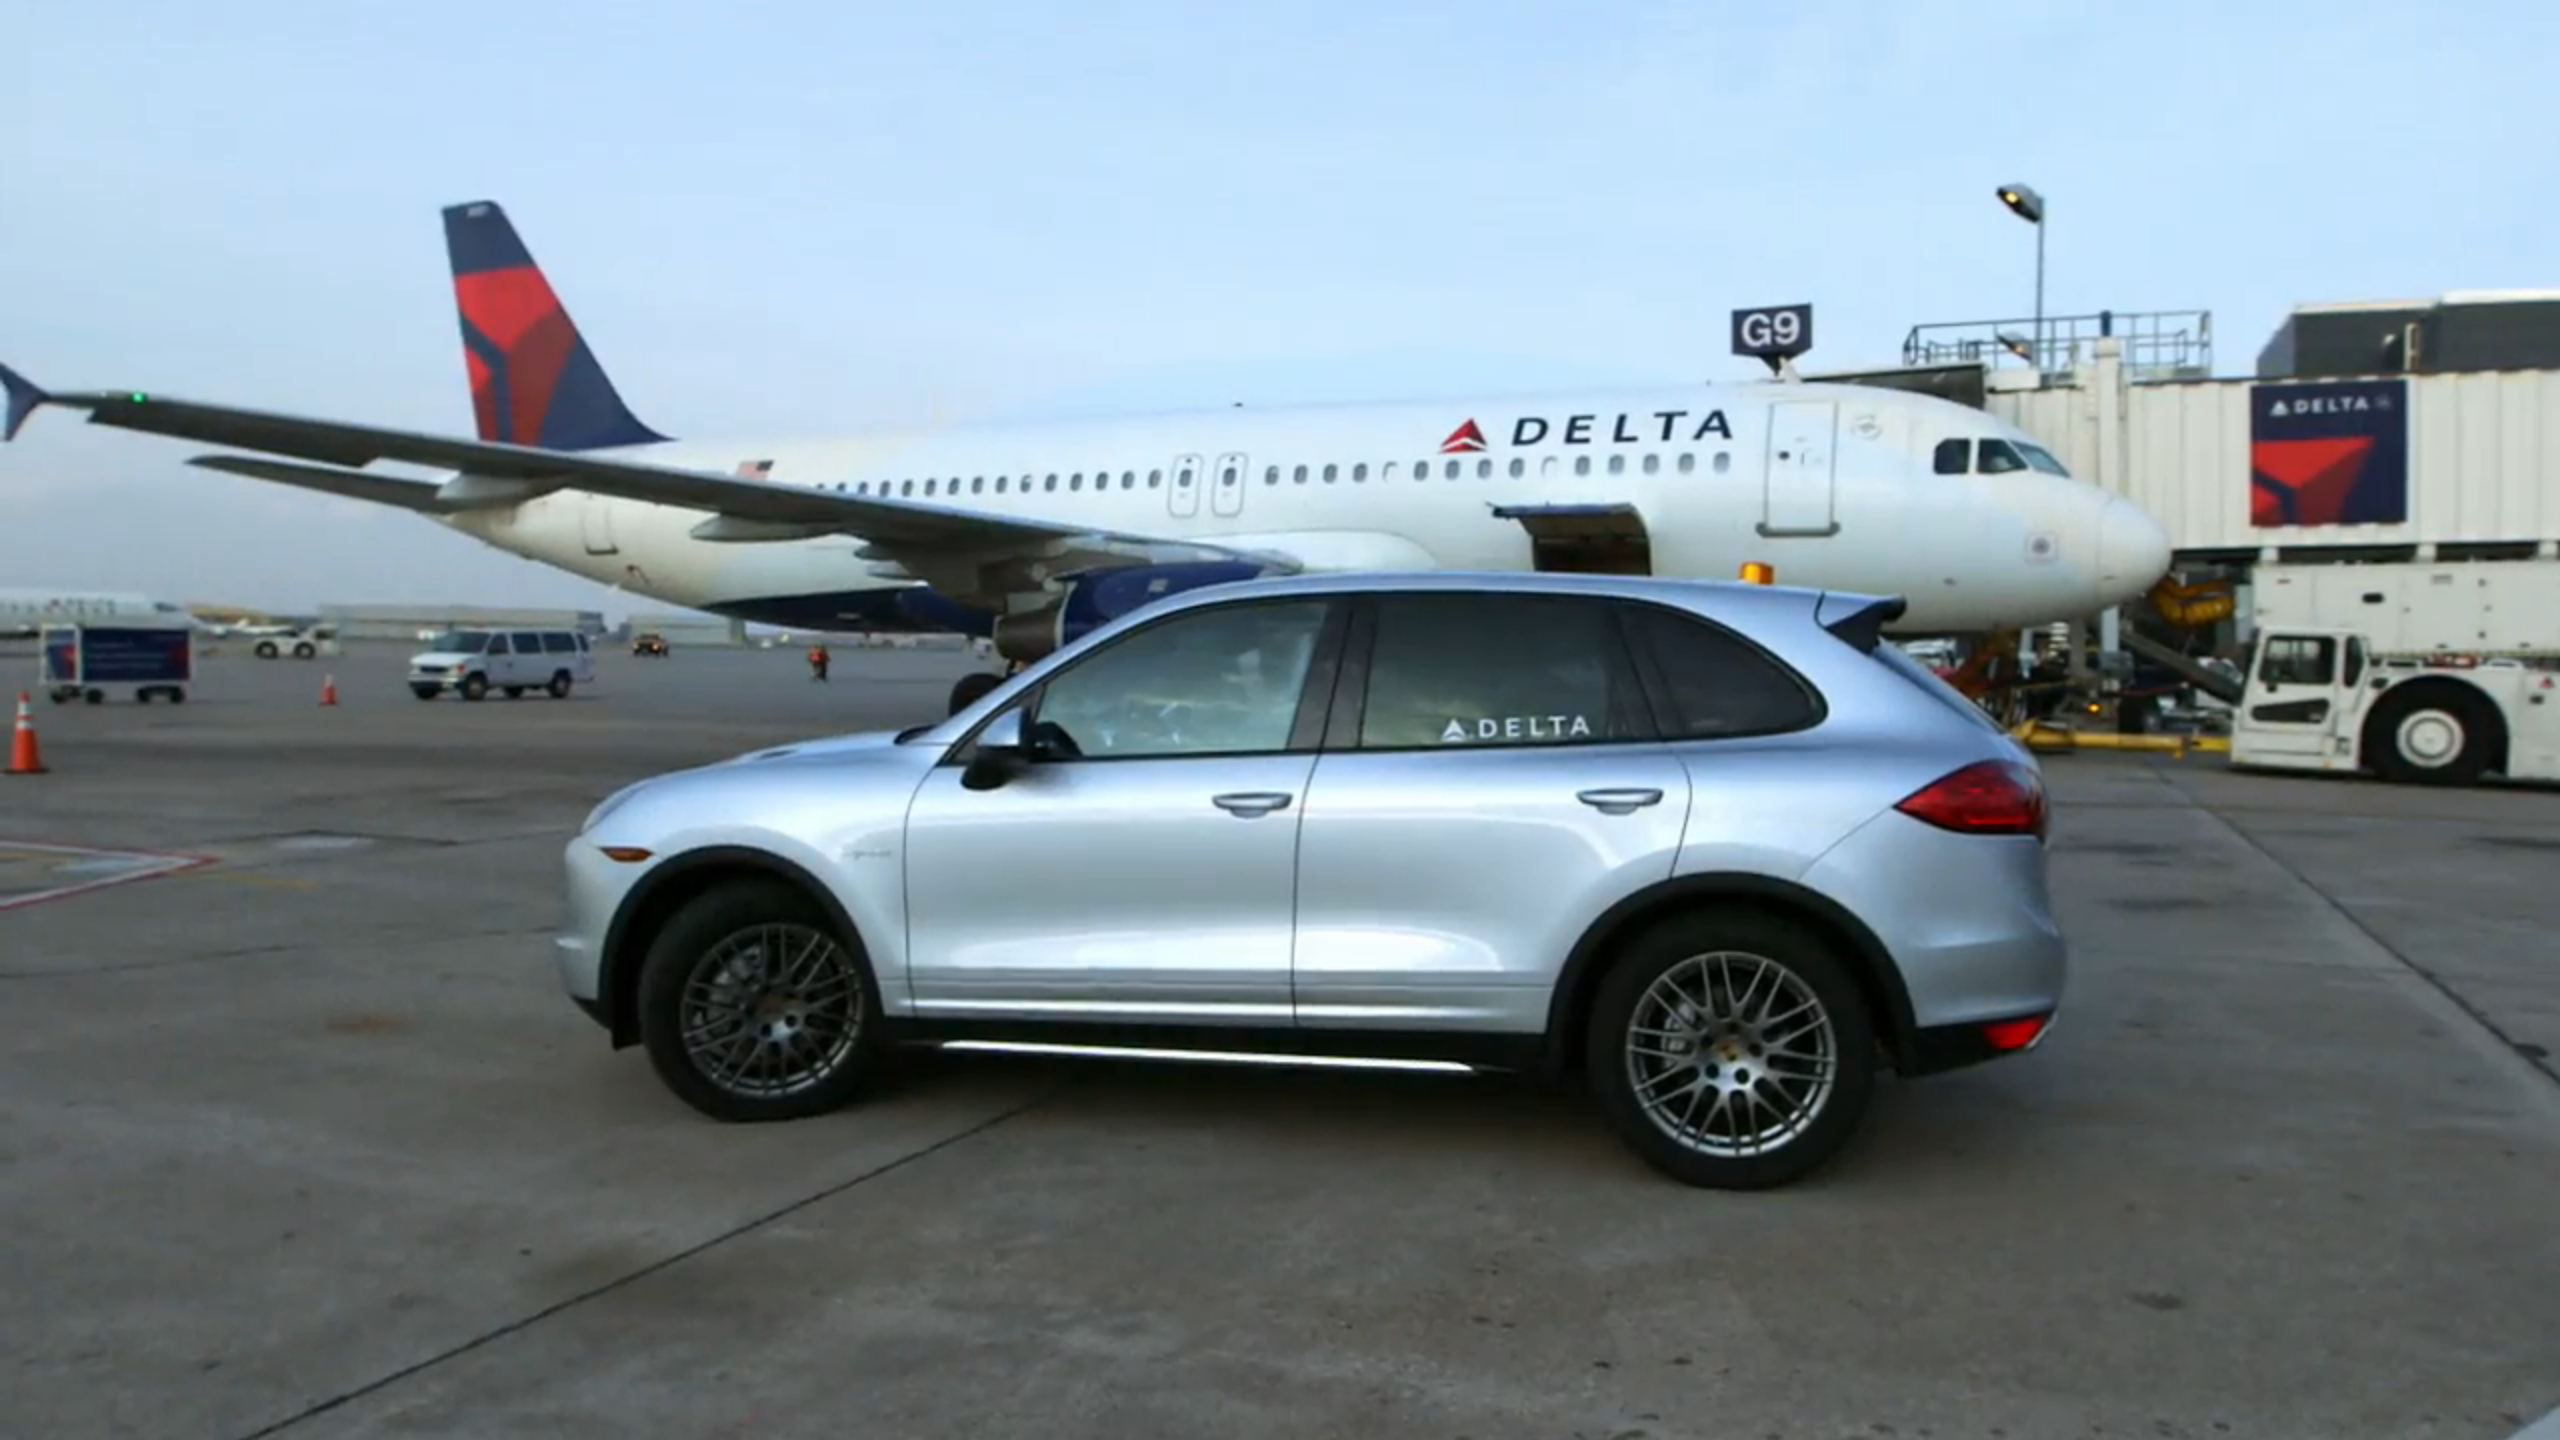 Porsche and Delta aircraft